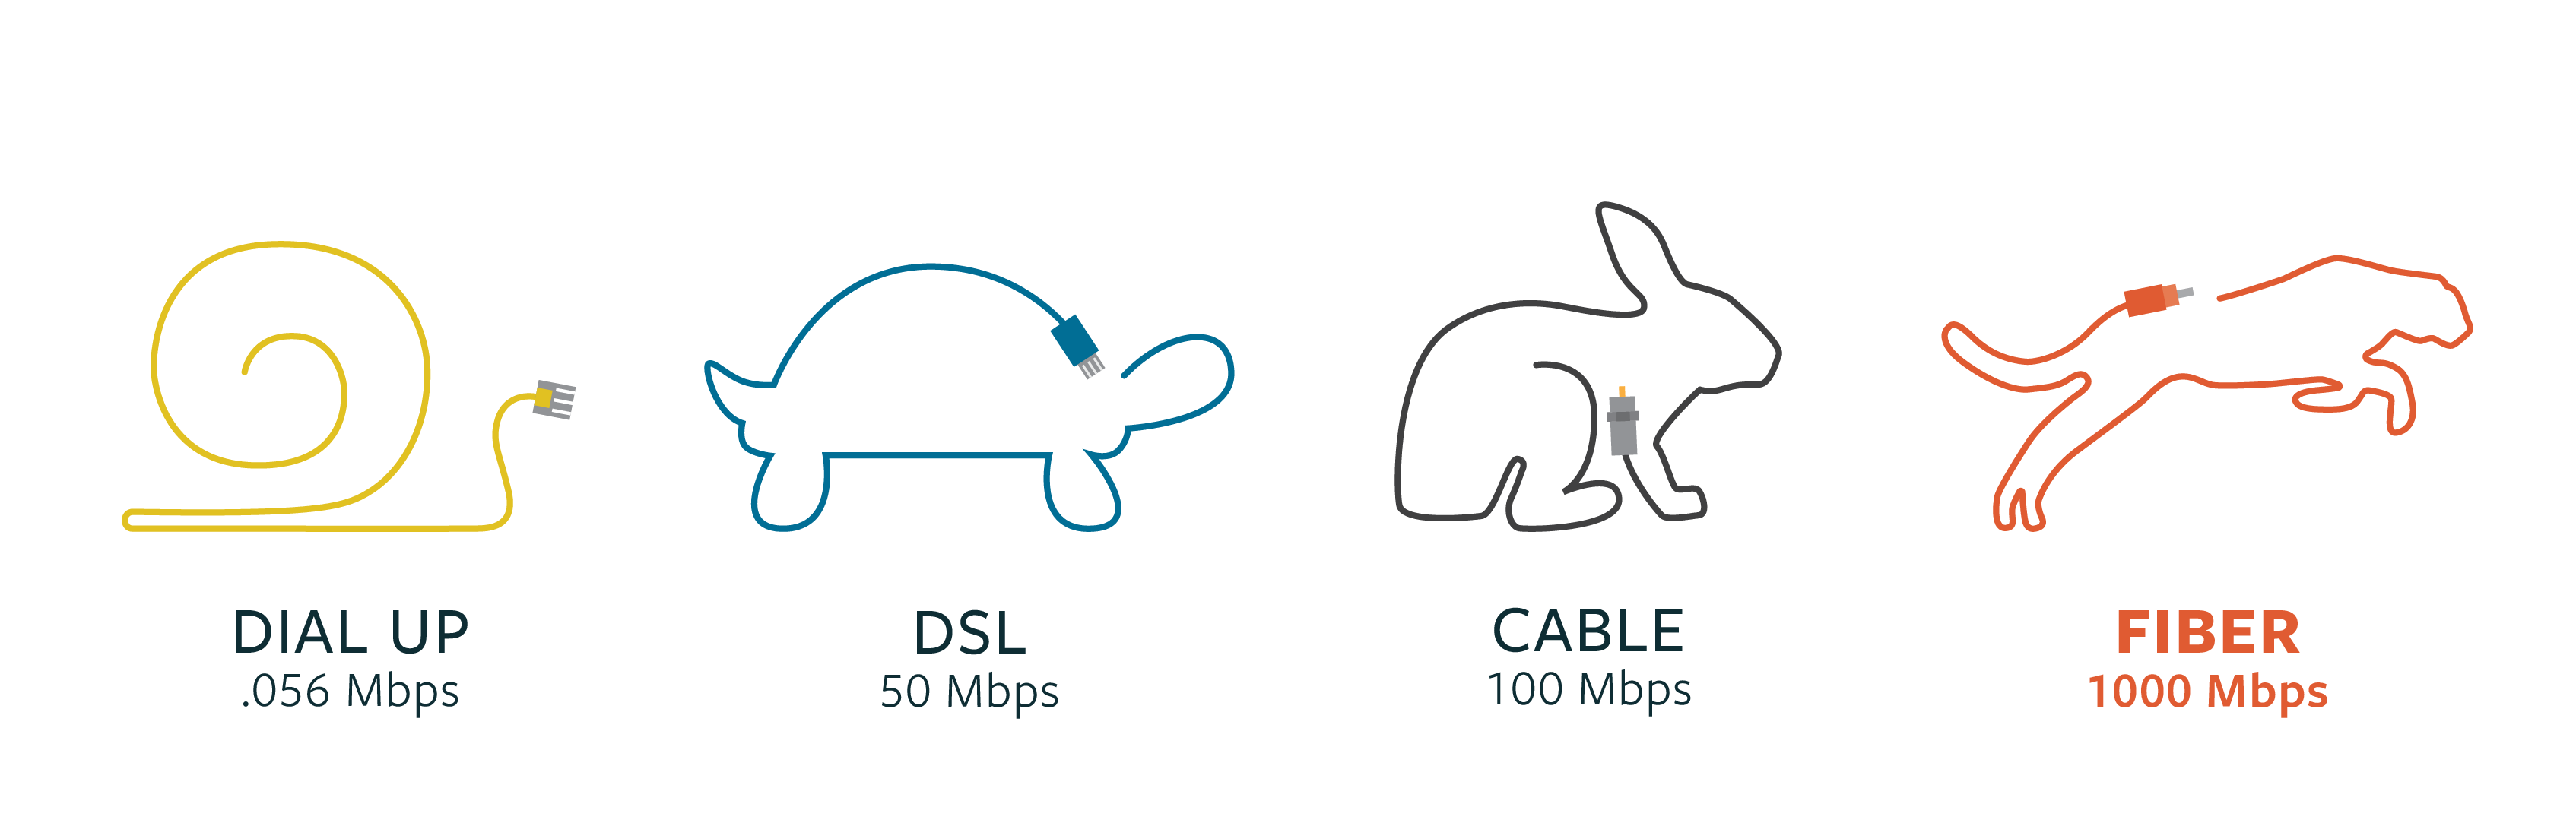 broadband speedanimals